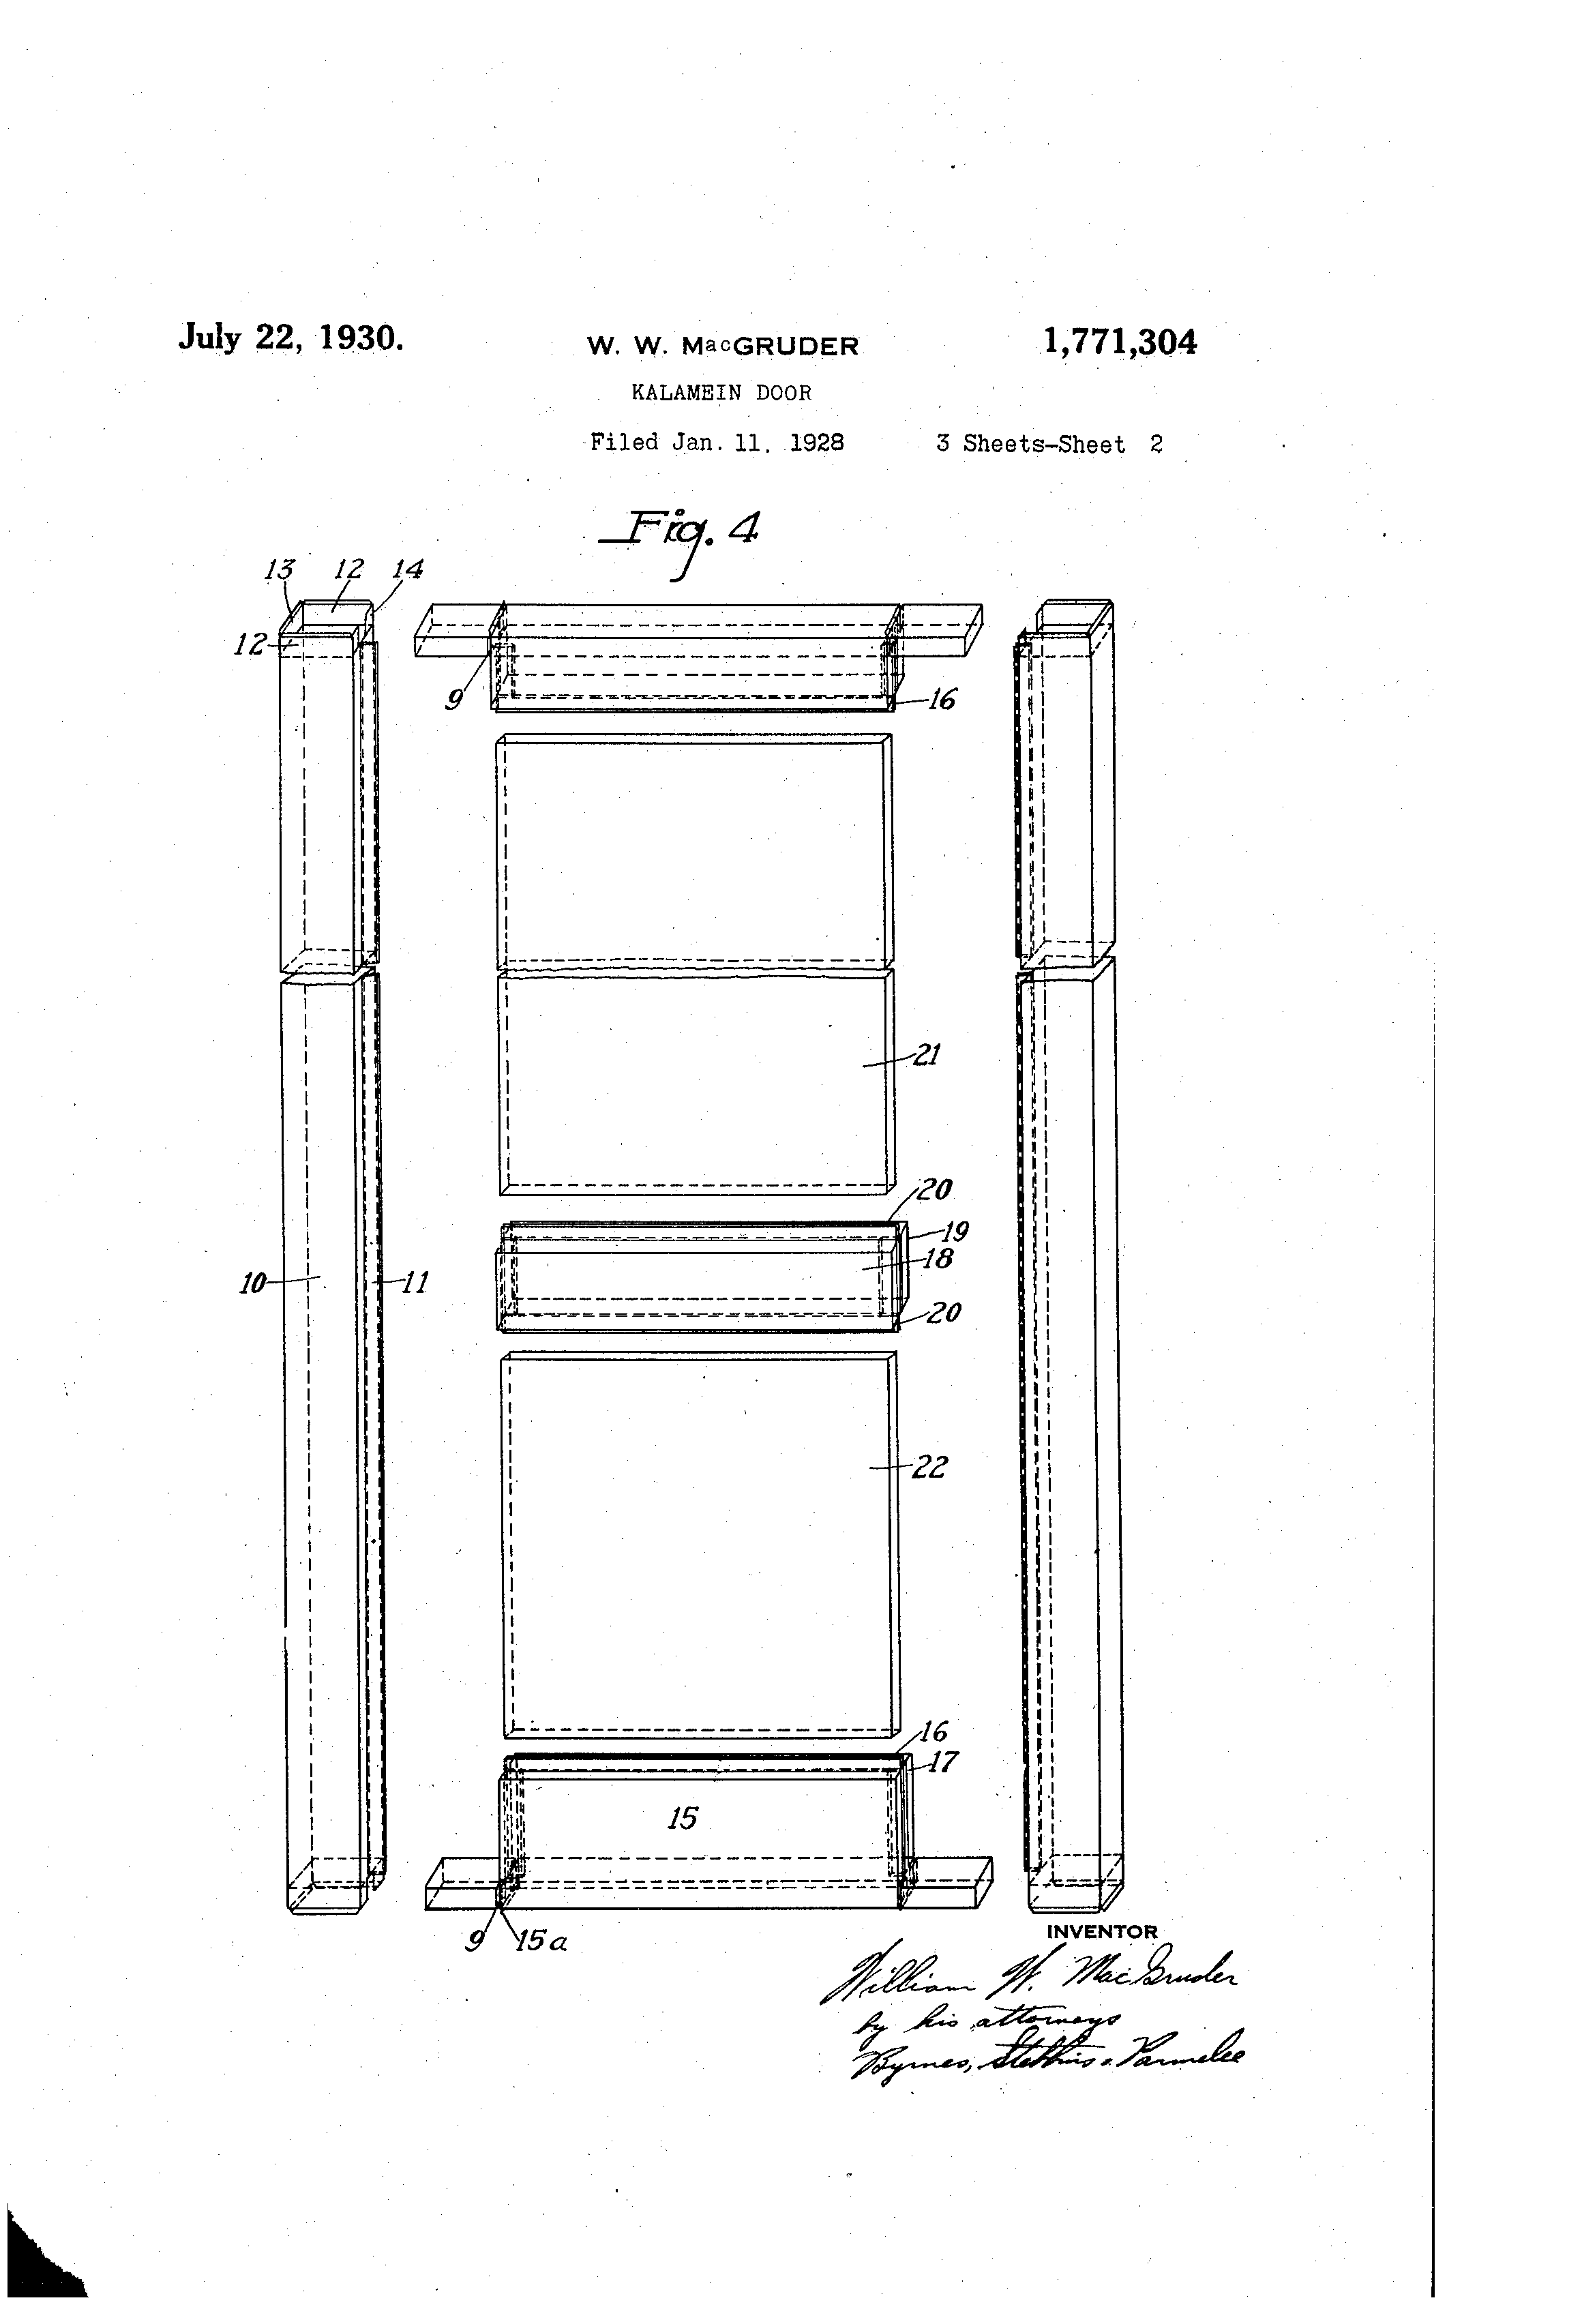 Patent Drawing  sc 1 st  Google & Patent US1771304 - Kalamein door - Google Patents pezcame.com